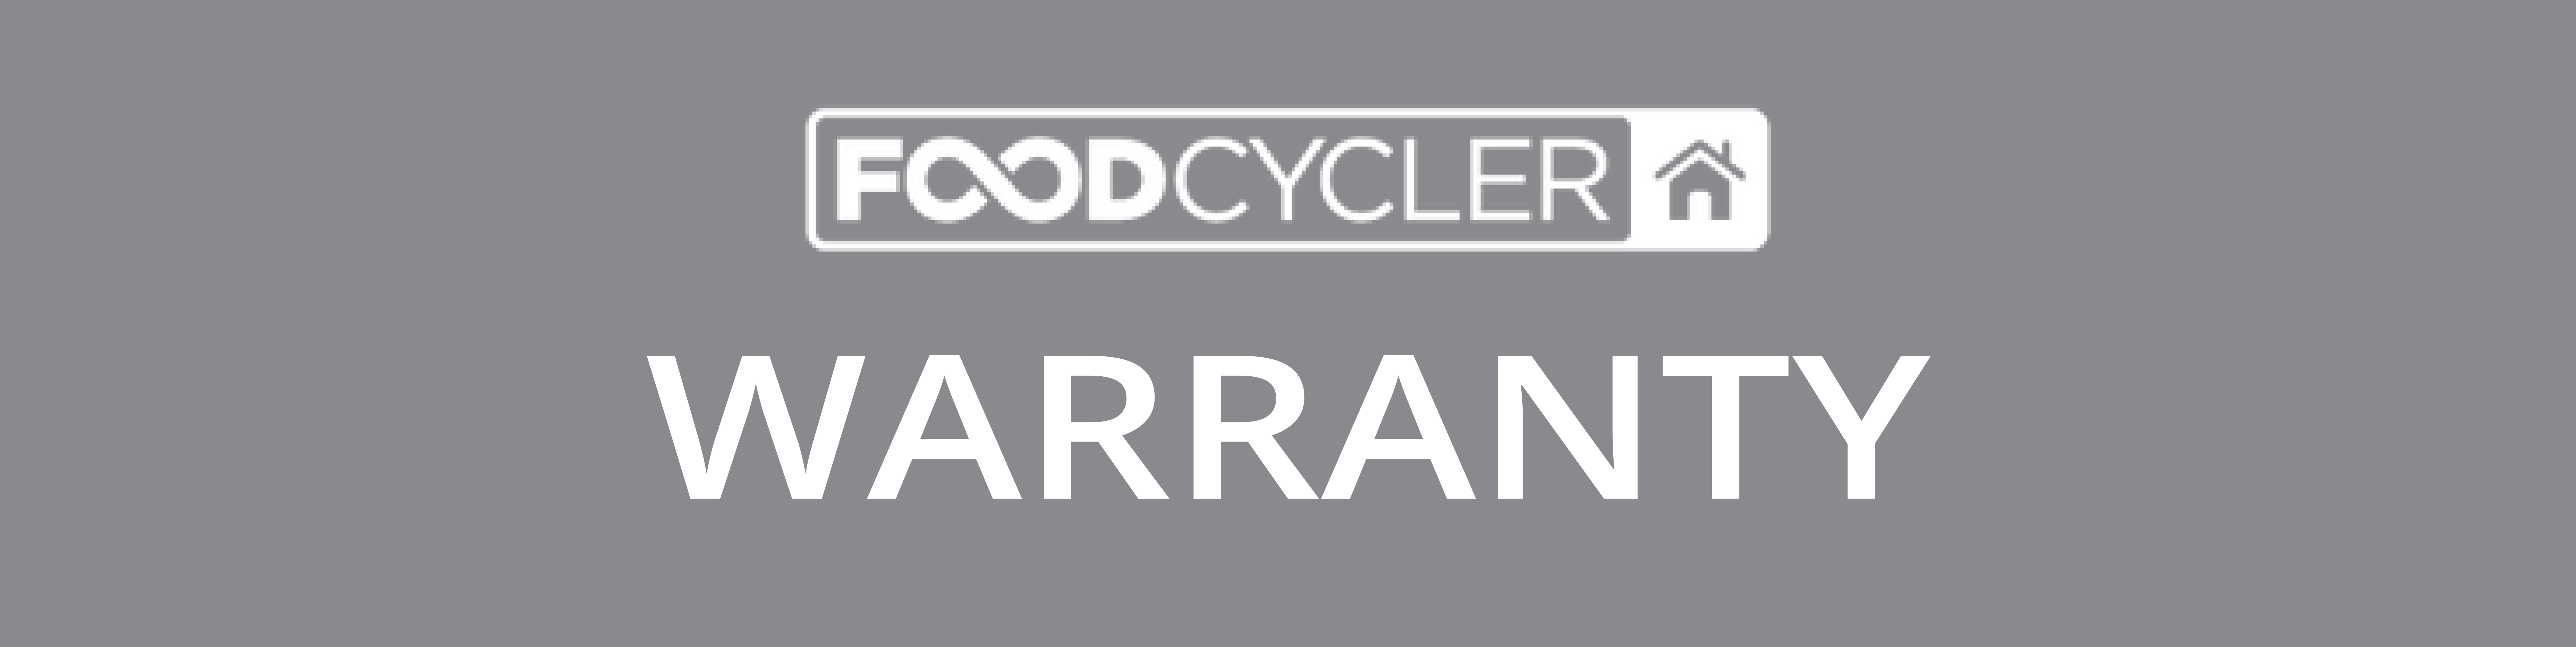 FoodCycler™ FC-30E Warranty